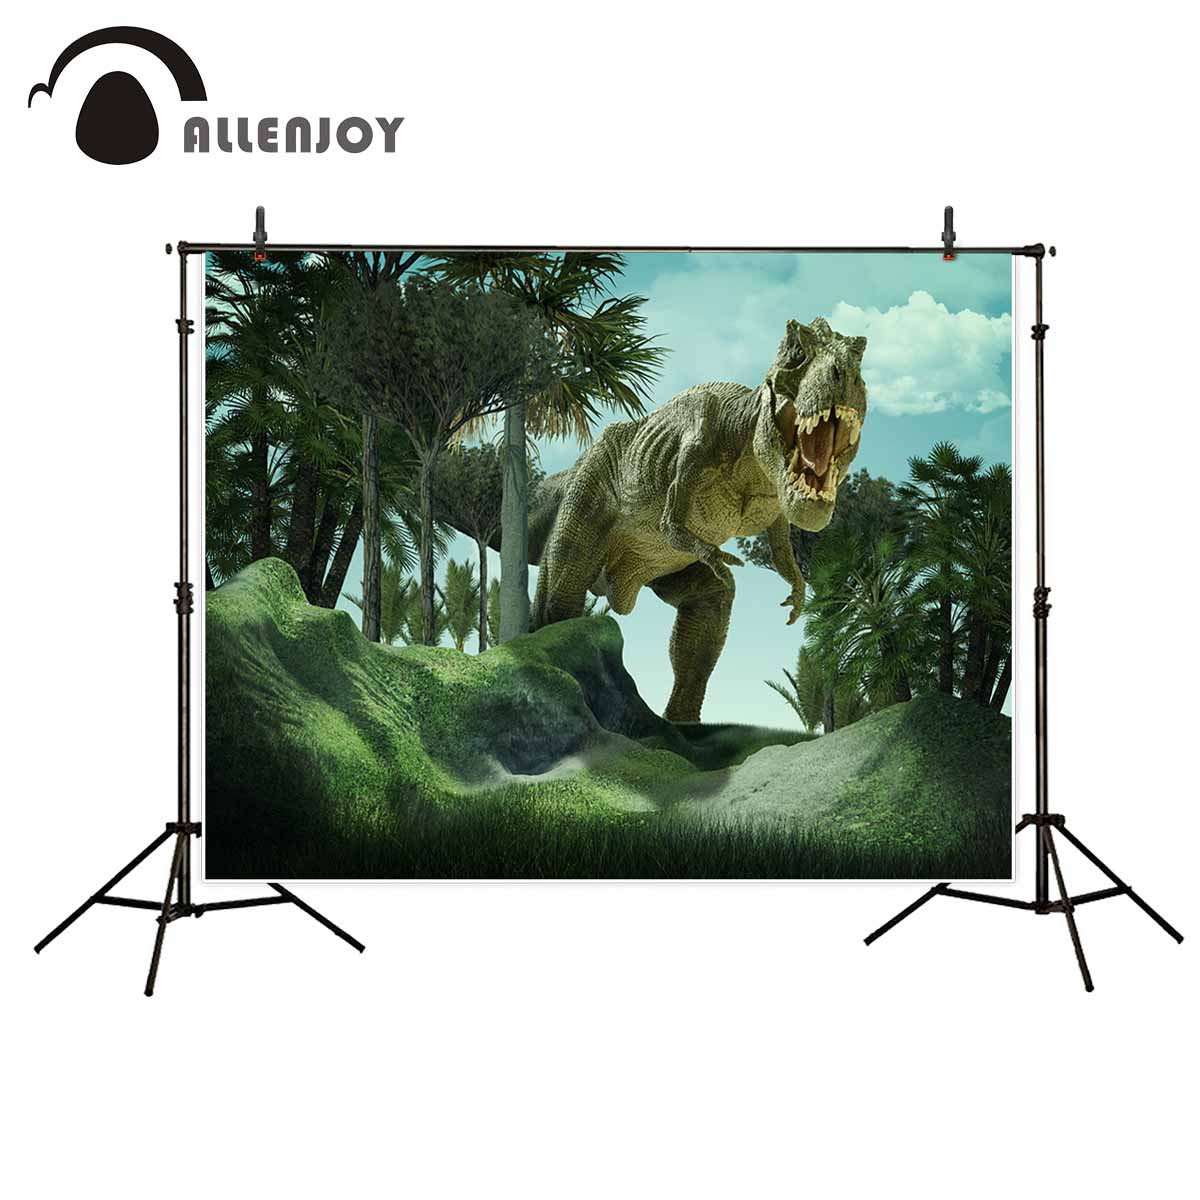 Allenjoy Dinosaur tree tropical soil slope photo backdrop photography studio funds fund new photographic backdrops